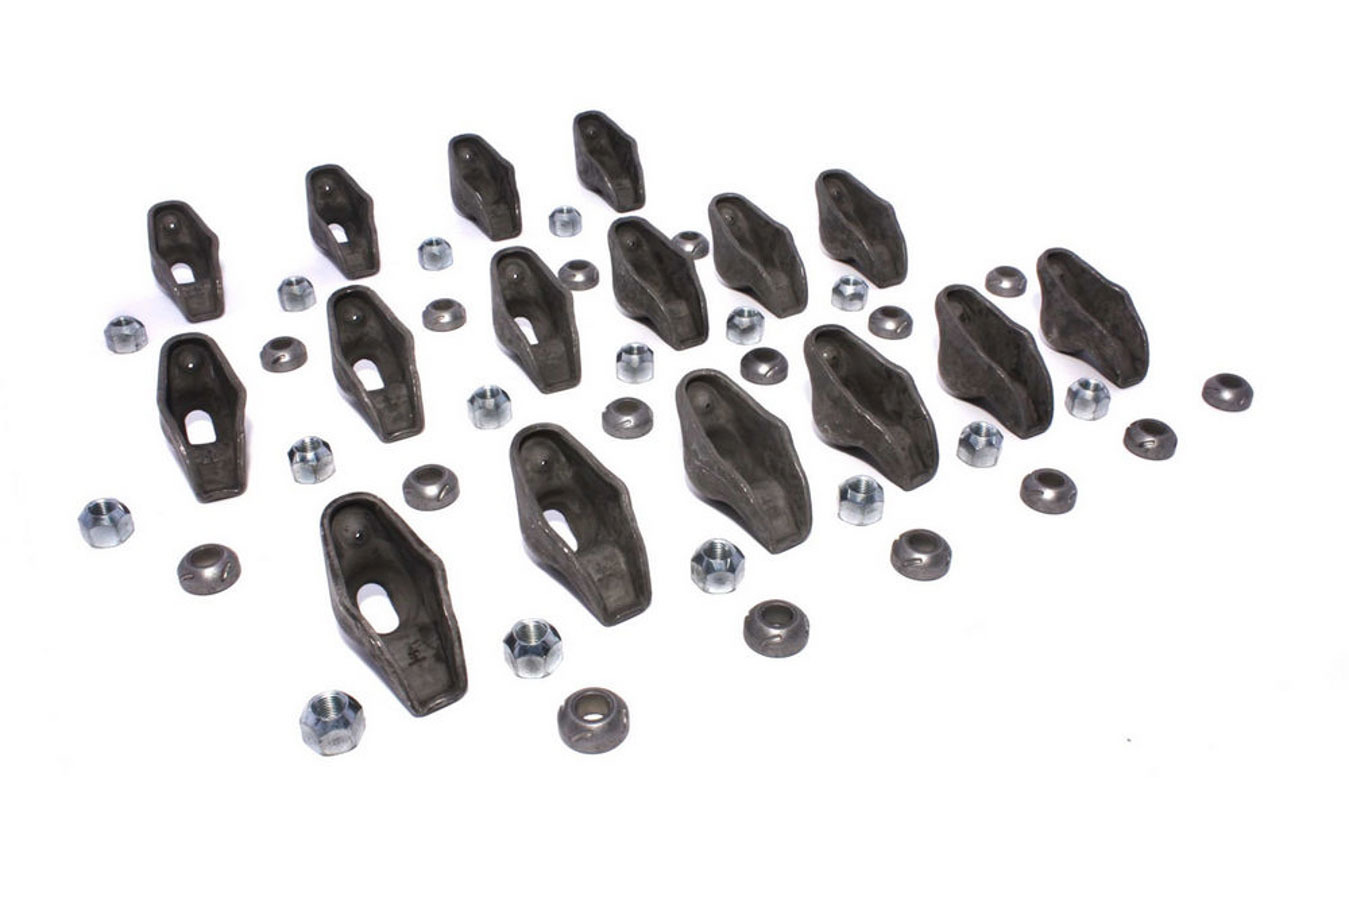 Comp Cams 1220-16 Rocker Arm, High Energy, 7/16 in Stud Mount, 1.50 Ratio, OEM / Long Slot, Nitride Steel, Small Block Chevy, Set of 16